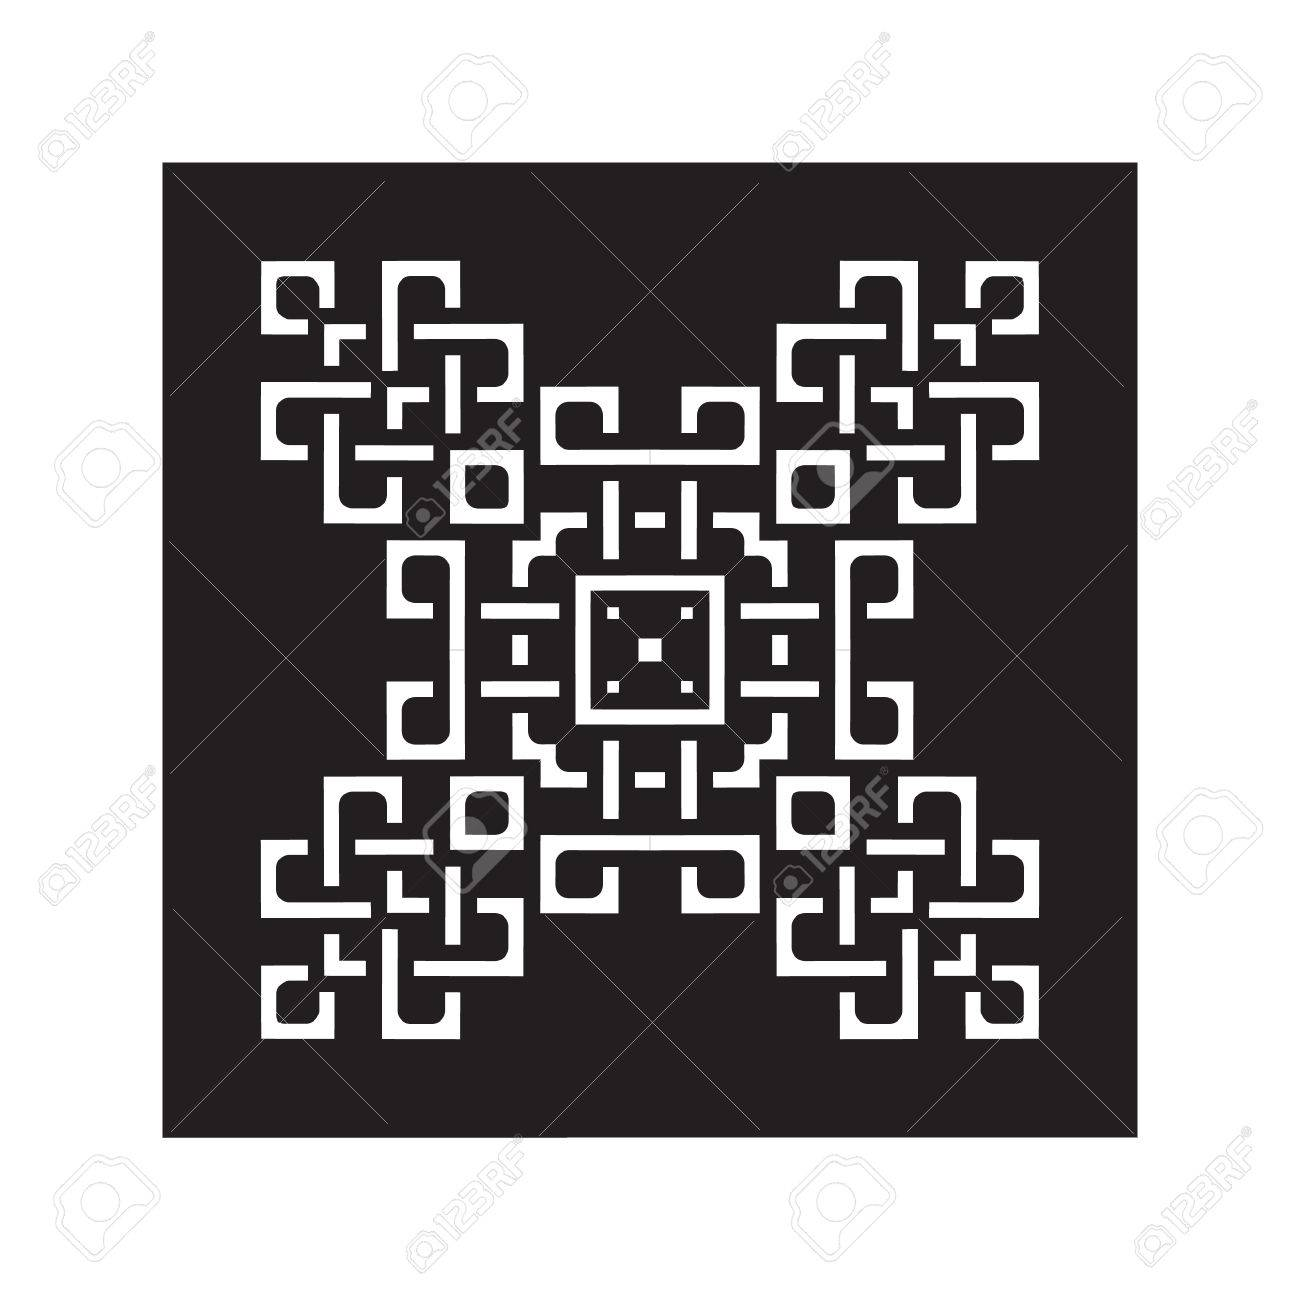 Laser Cutting Template Decorative Elements Lace Patterns Square Lattice Ornaments For Wood Carving